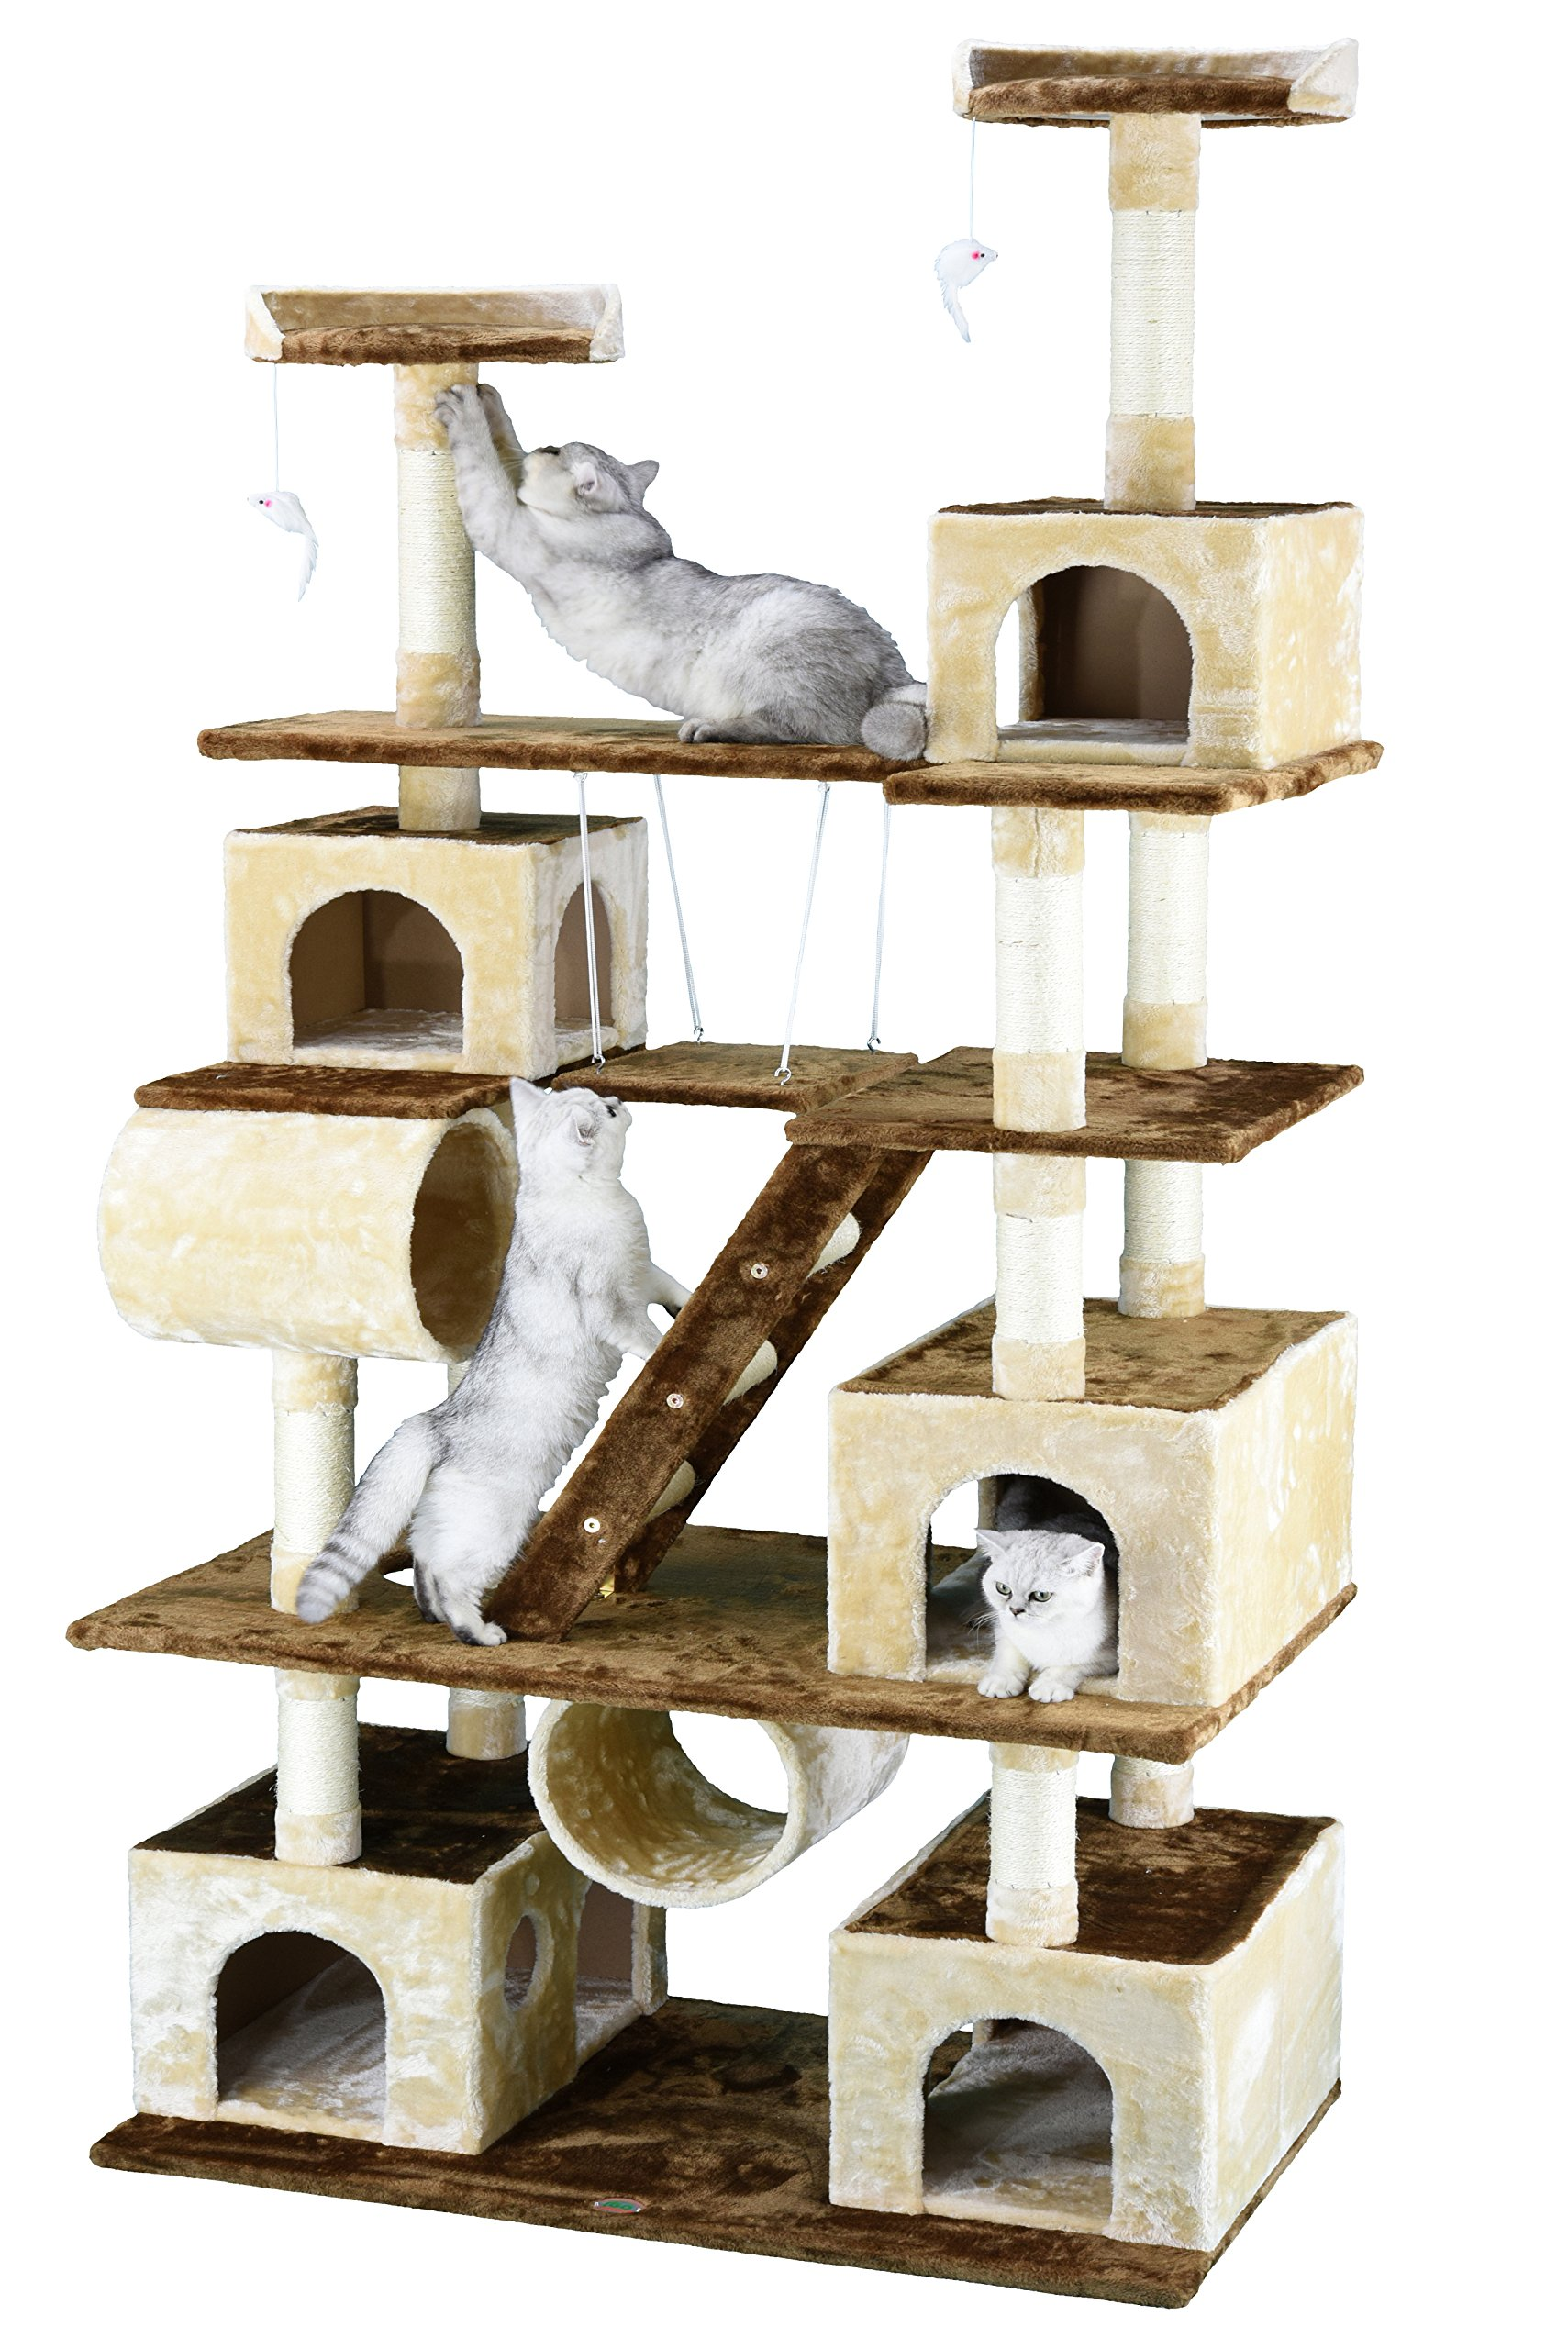 Go Pet Club Huge 87'' Tall Cat Tree House Climber Furniture with Swing